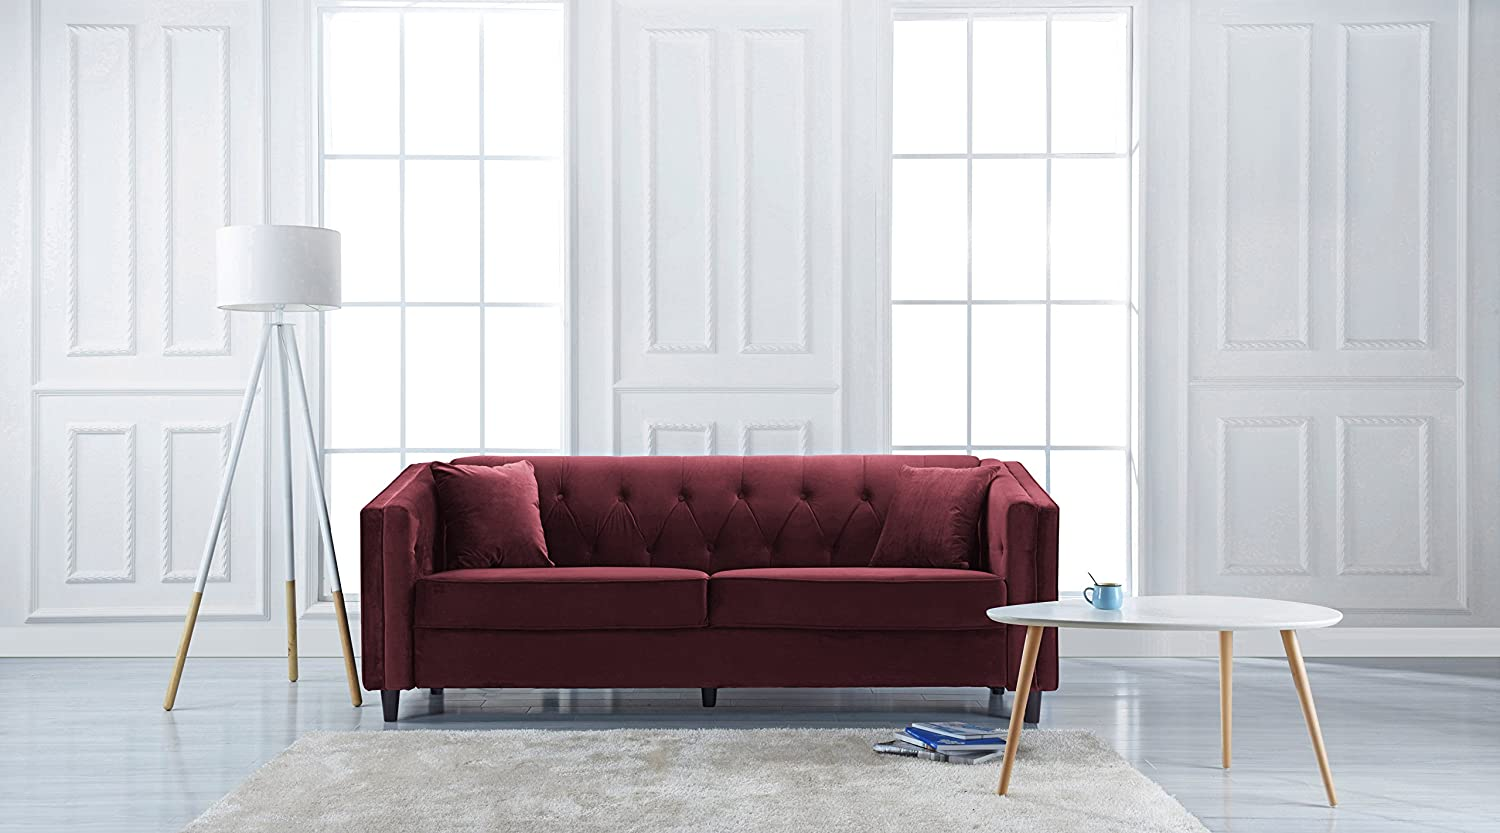 Amazon.com: Classic Victorian Style Tufted Velvet Sofa, Living Room ...